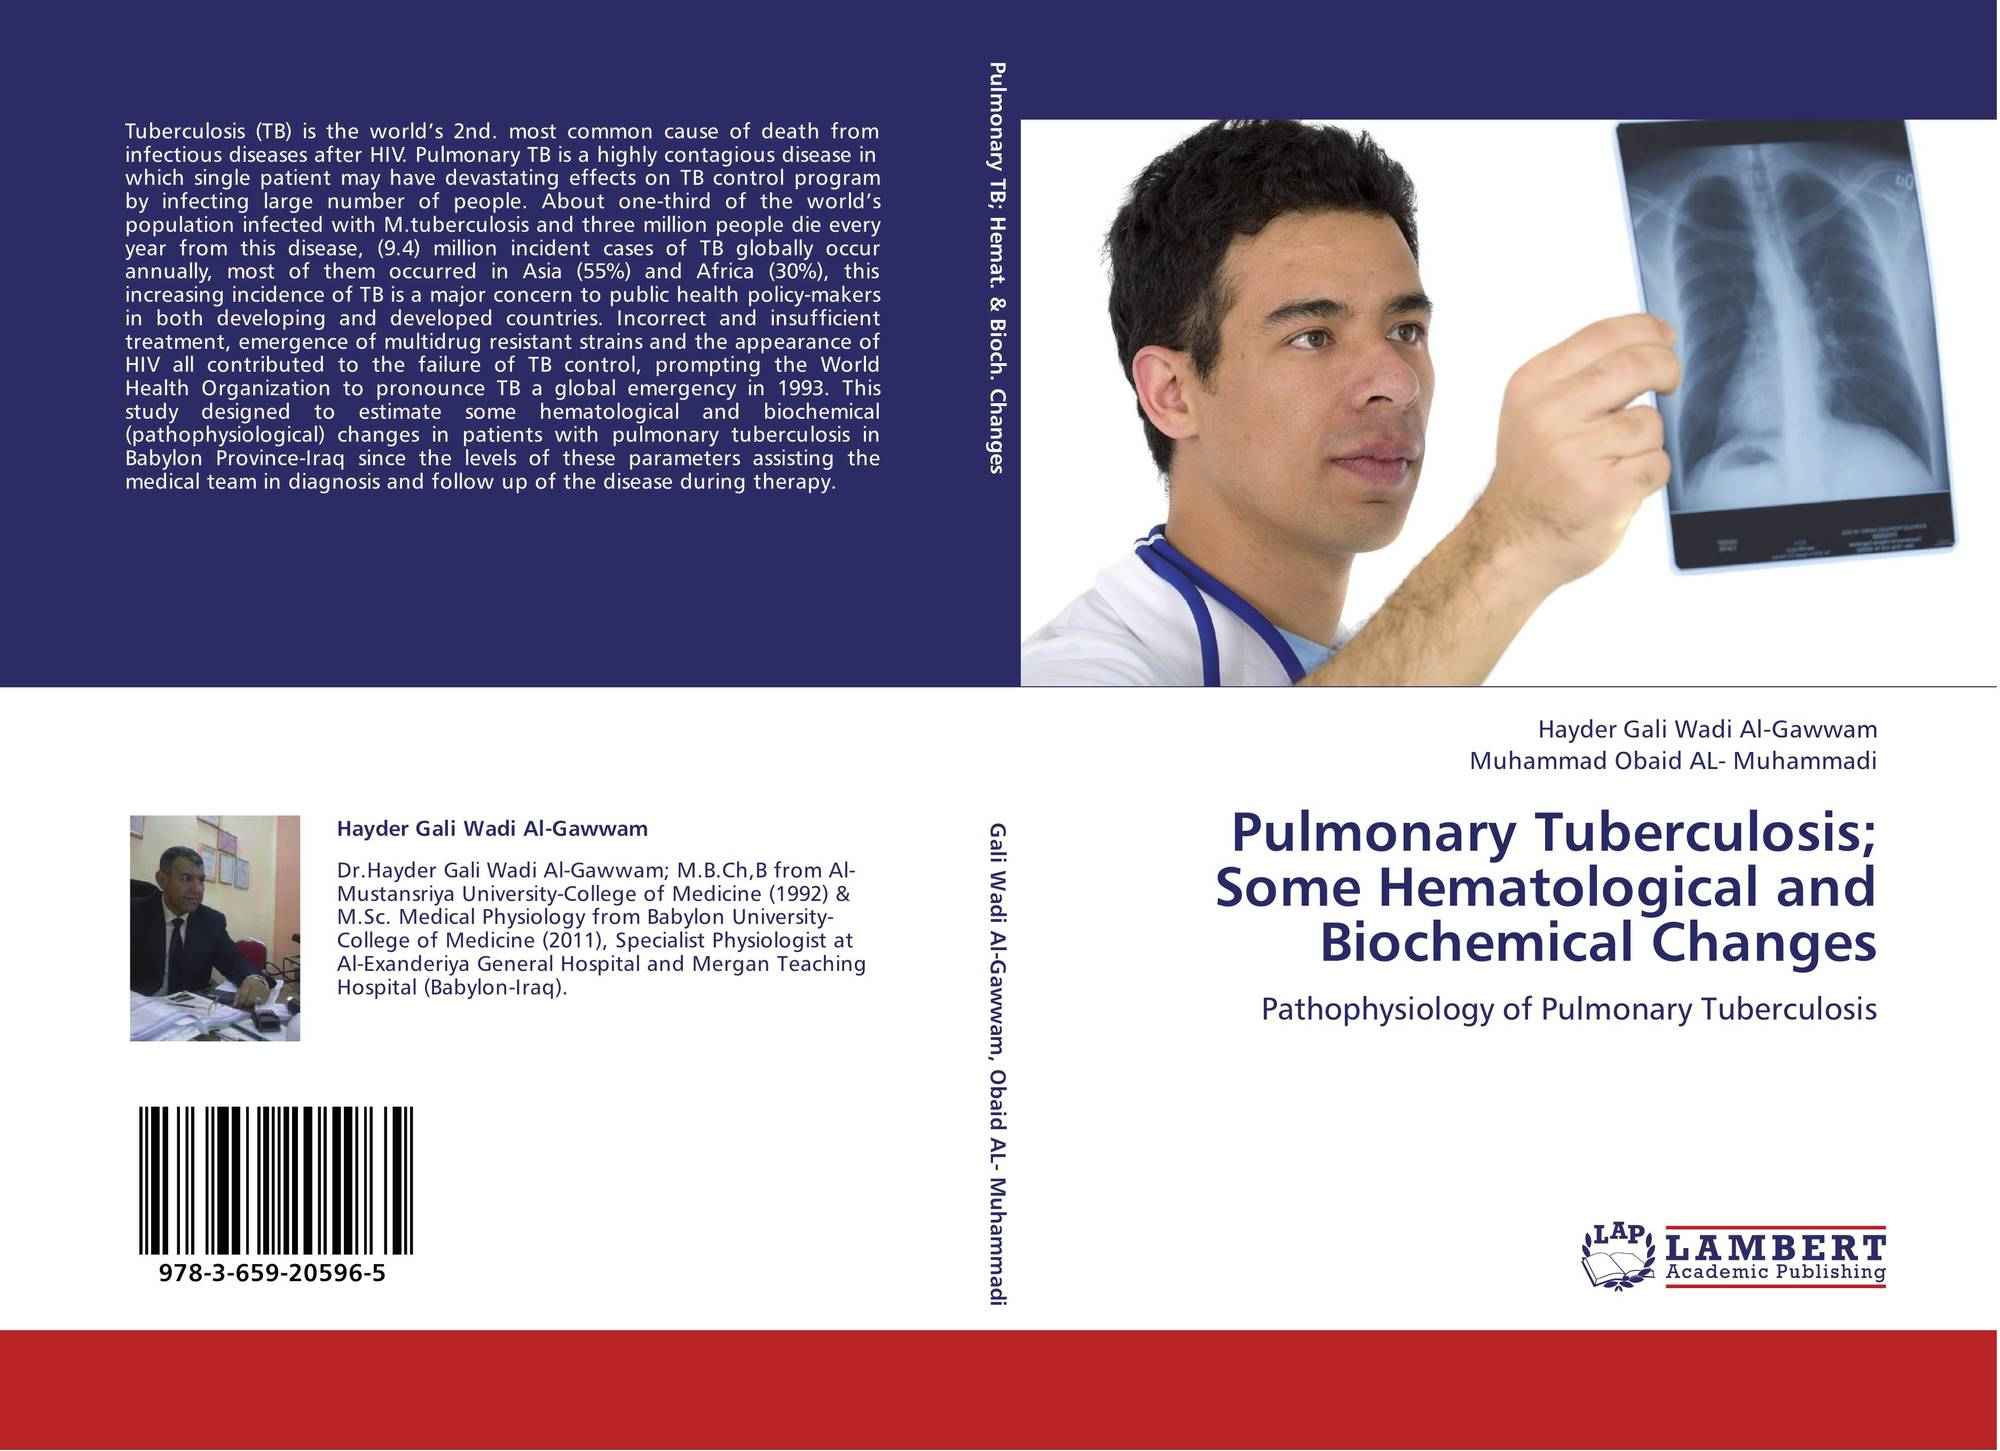 pulmonary tuberculosis thesis Tuberculosis tuberculosis is an airborne infectious disease caused by different strains of mycobacterium commonly referred to as mycobacterium tuberculosis.